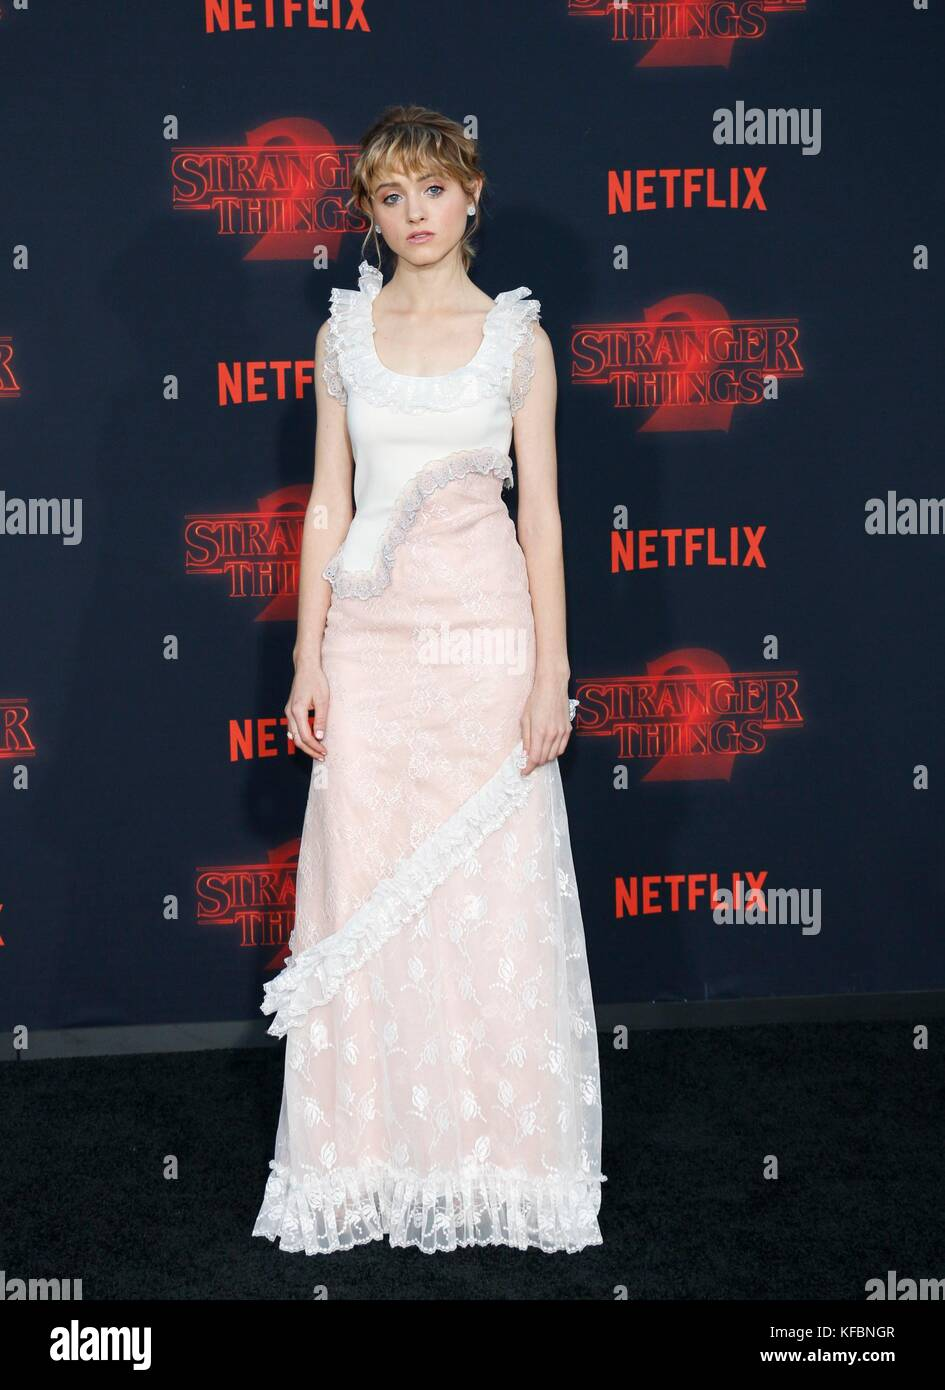 Los Angeles, CA, USA. 26th Oct, 2017. Natalia Dyer at arrivals for NETFLIX'S STRANGER THINGS 2 Premiere, Regency - Stock Image